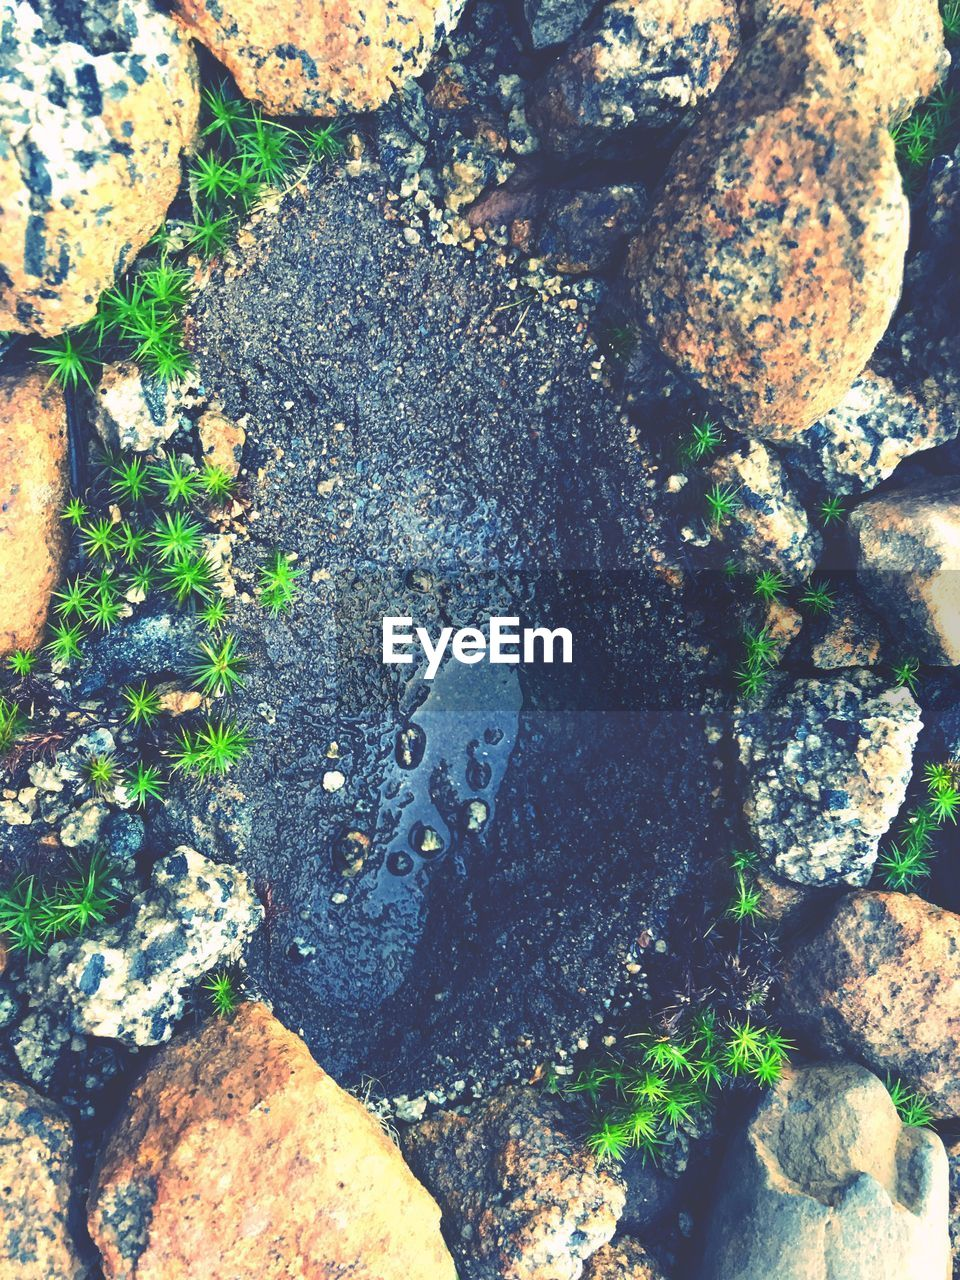 rock - object, nature, day, no people, outdoors, high angle view, lichen, moss, textured, pebble, beauty in nature, close-up